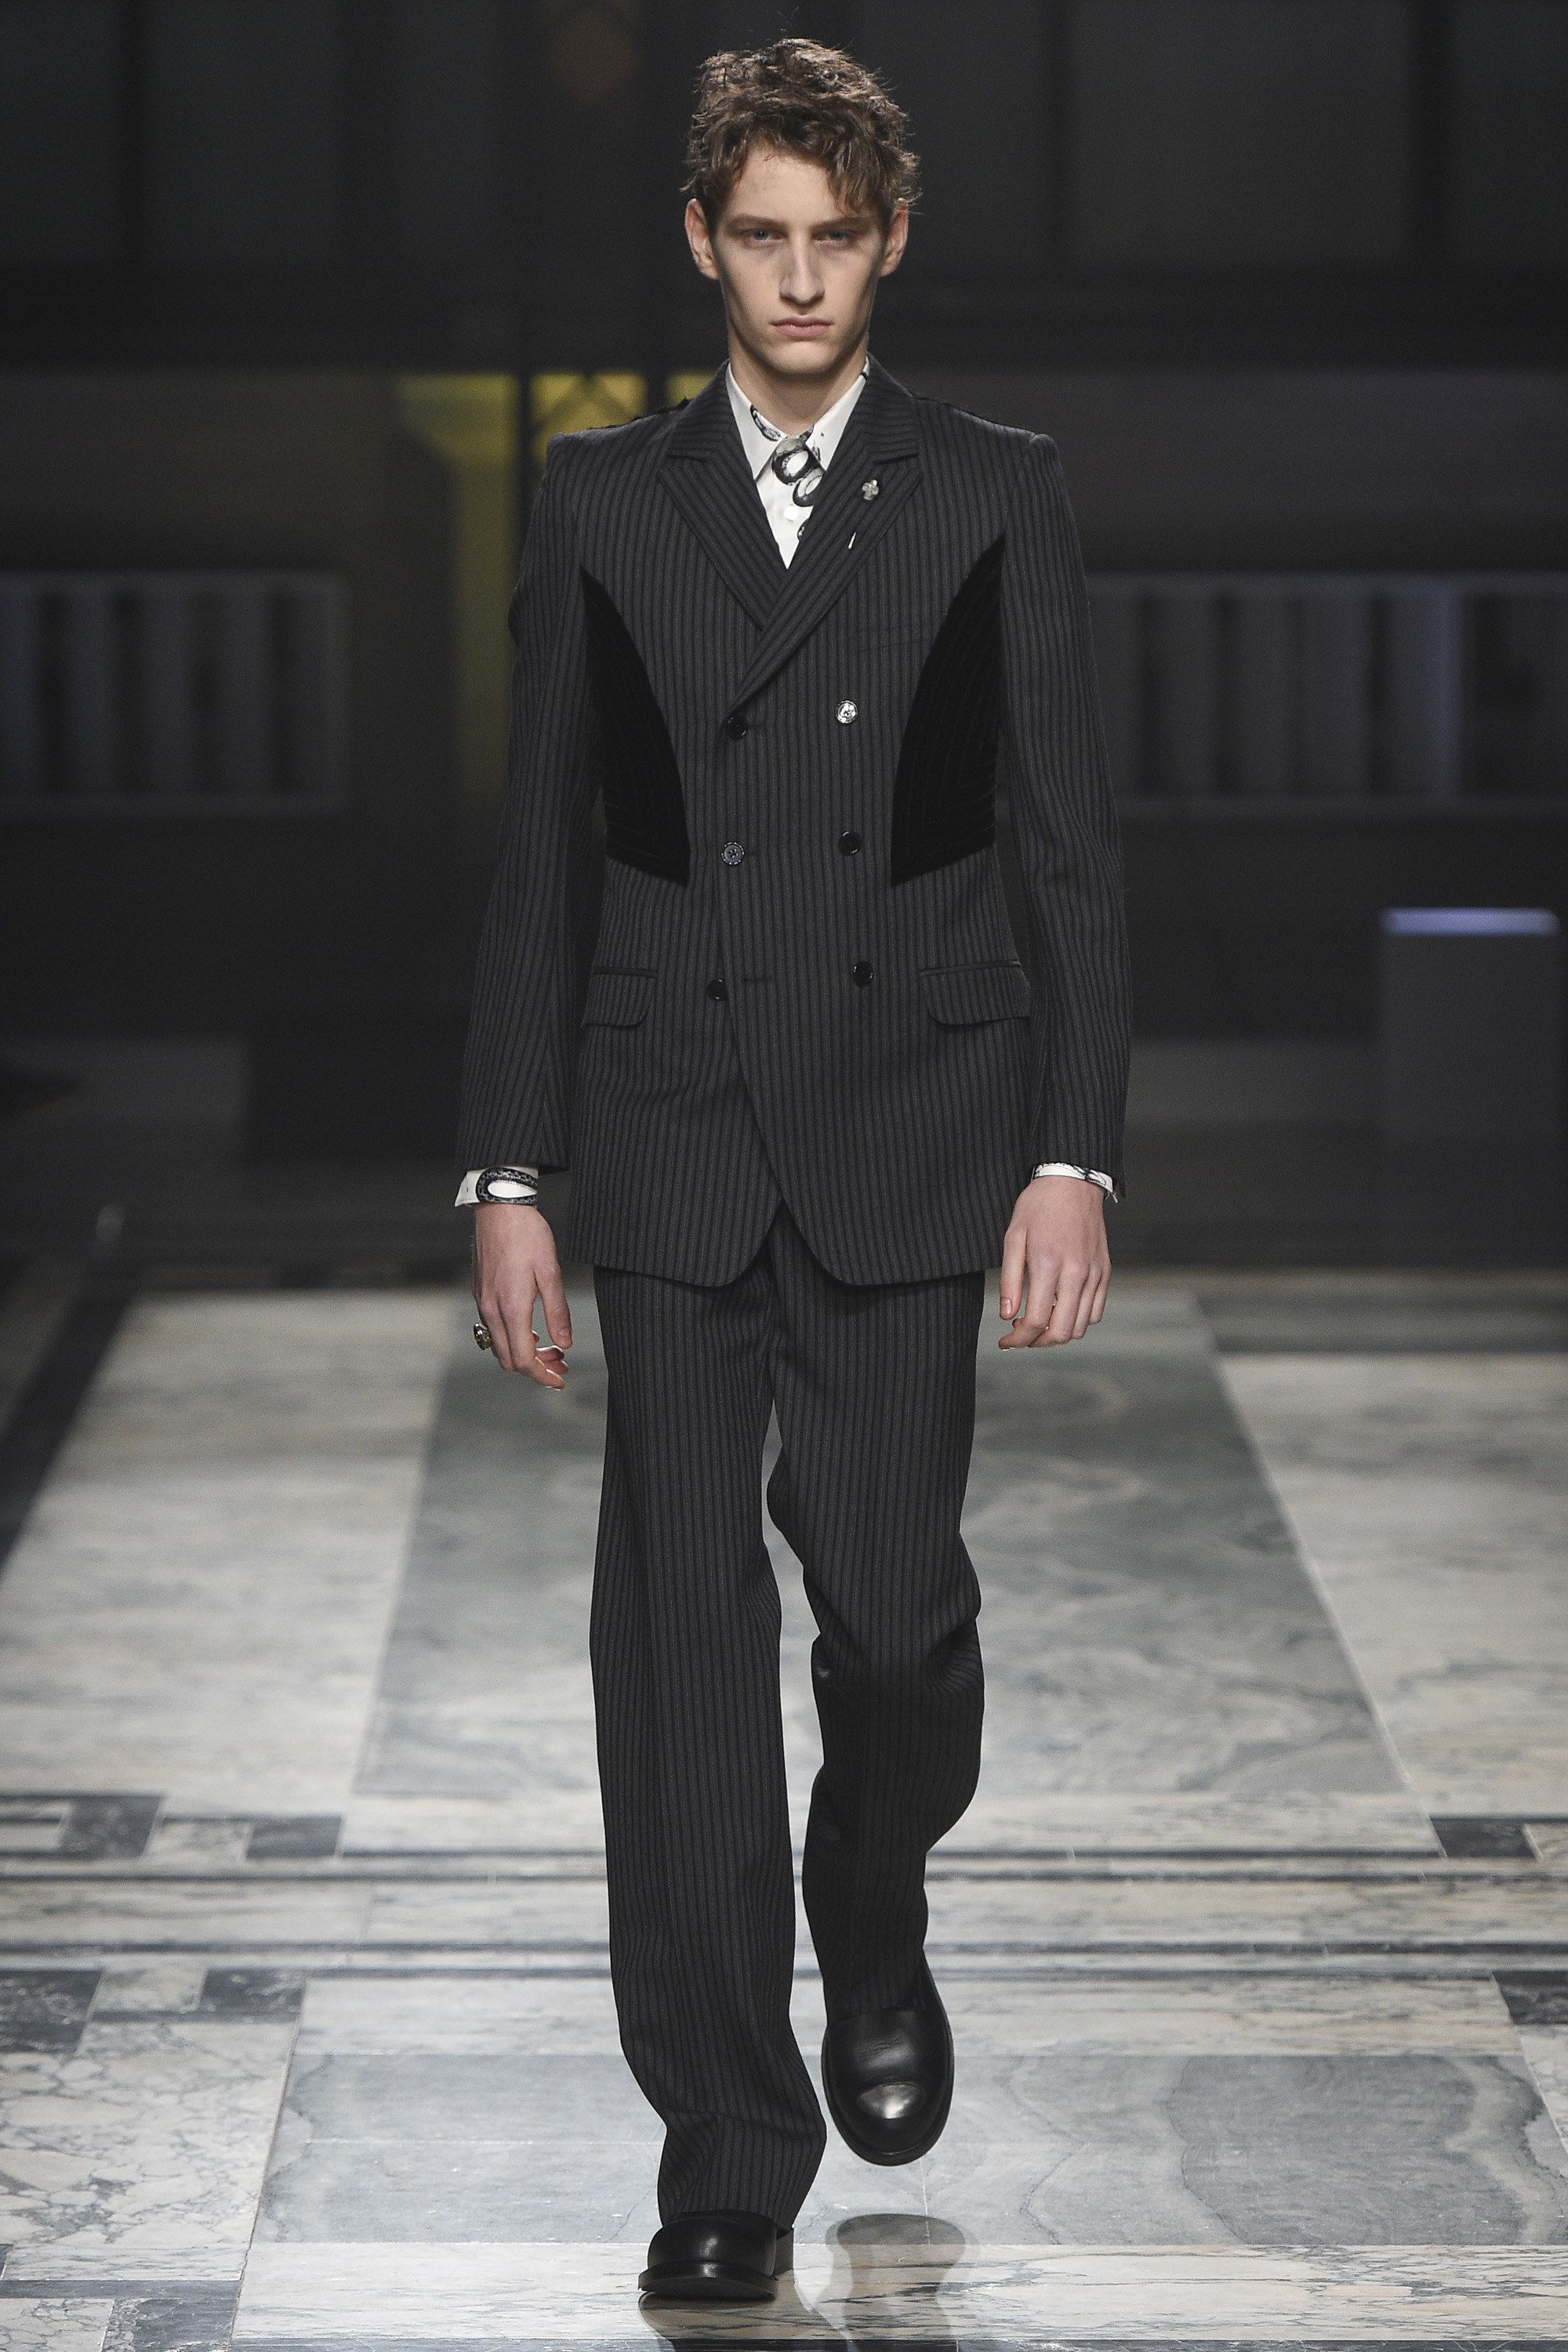 Alexander McQueen Fall 2016 Menswear Collection Photos - Vogue